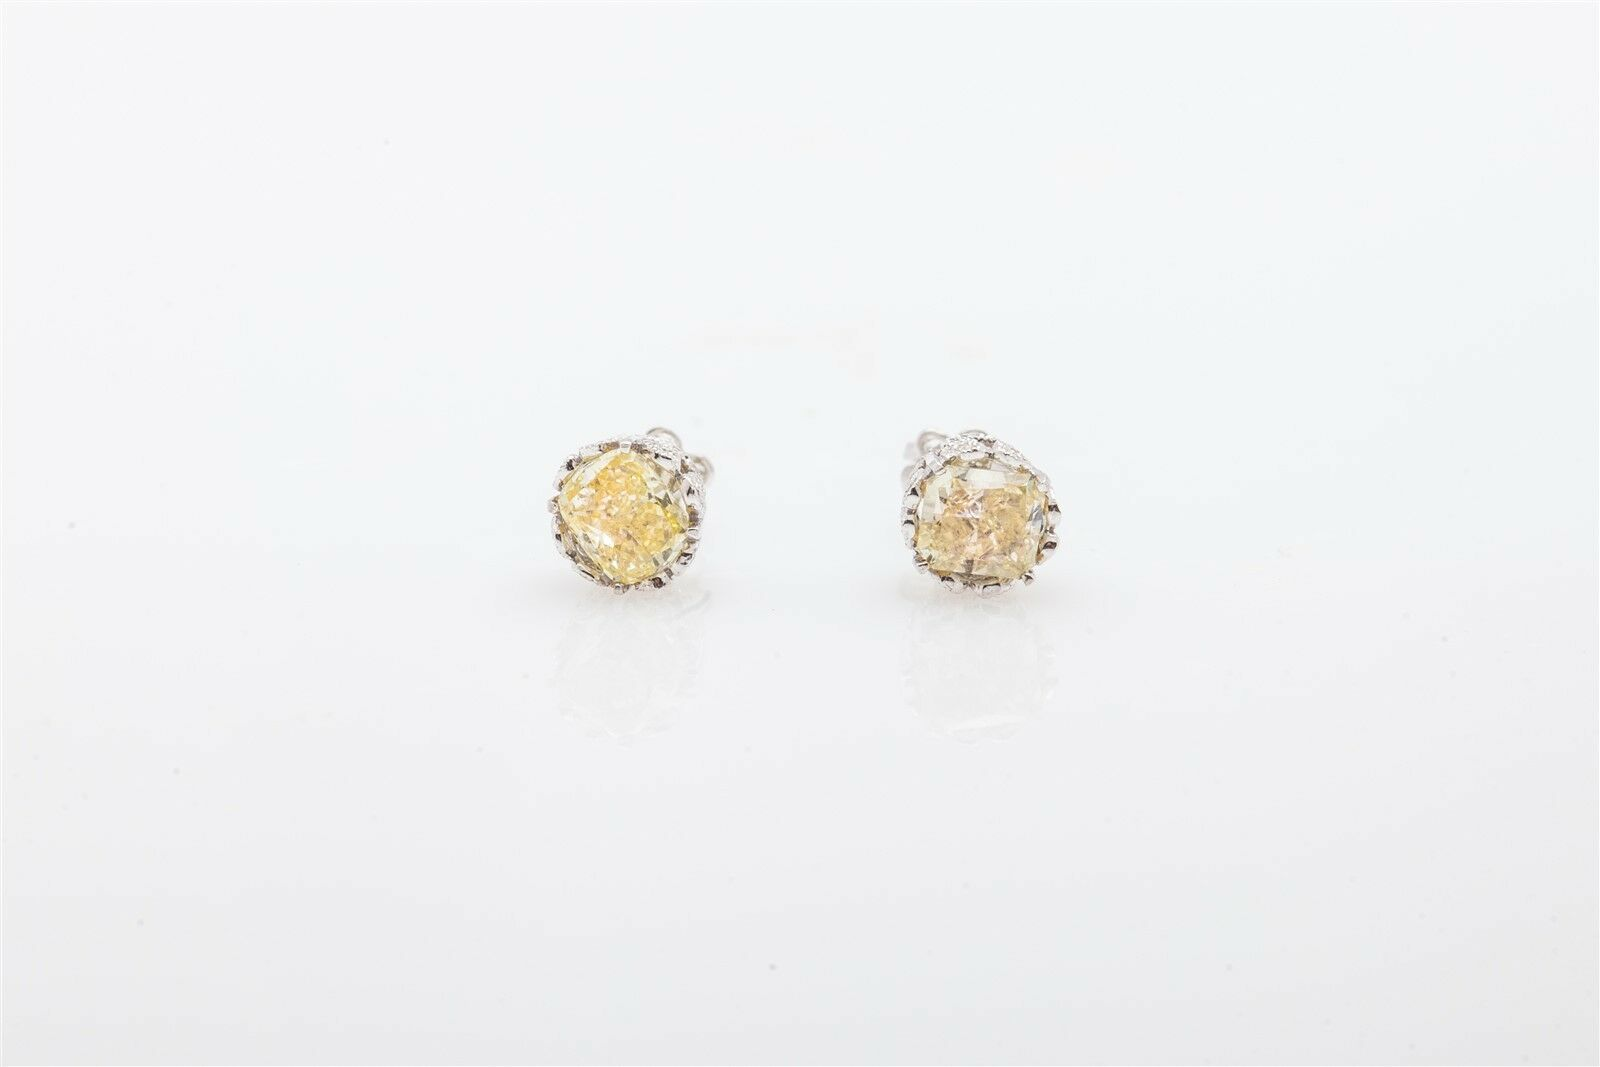 8000 1.50ct Cushion Cut Natural Fancy Yellow 18k gold Diamond Eternity Earrings